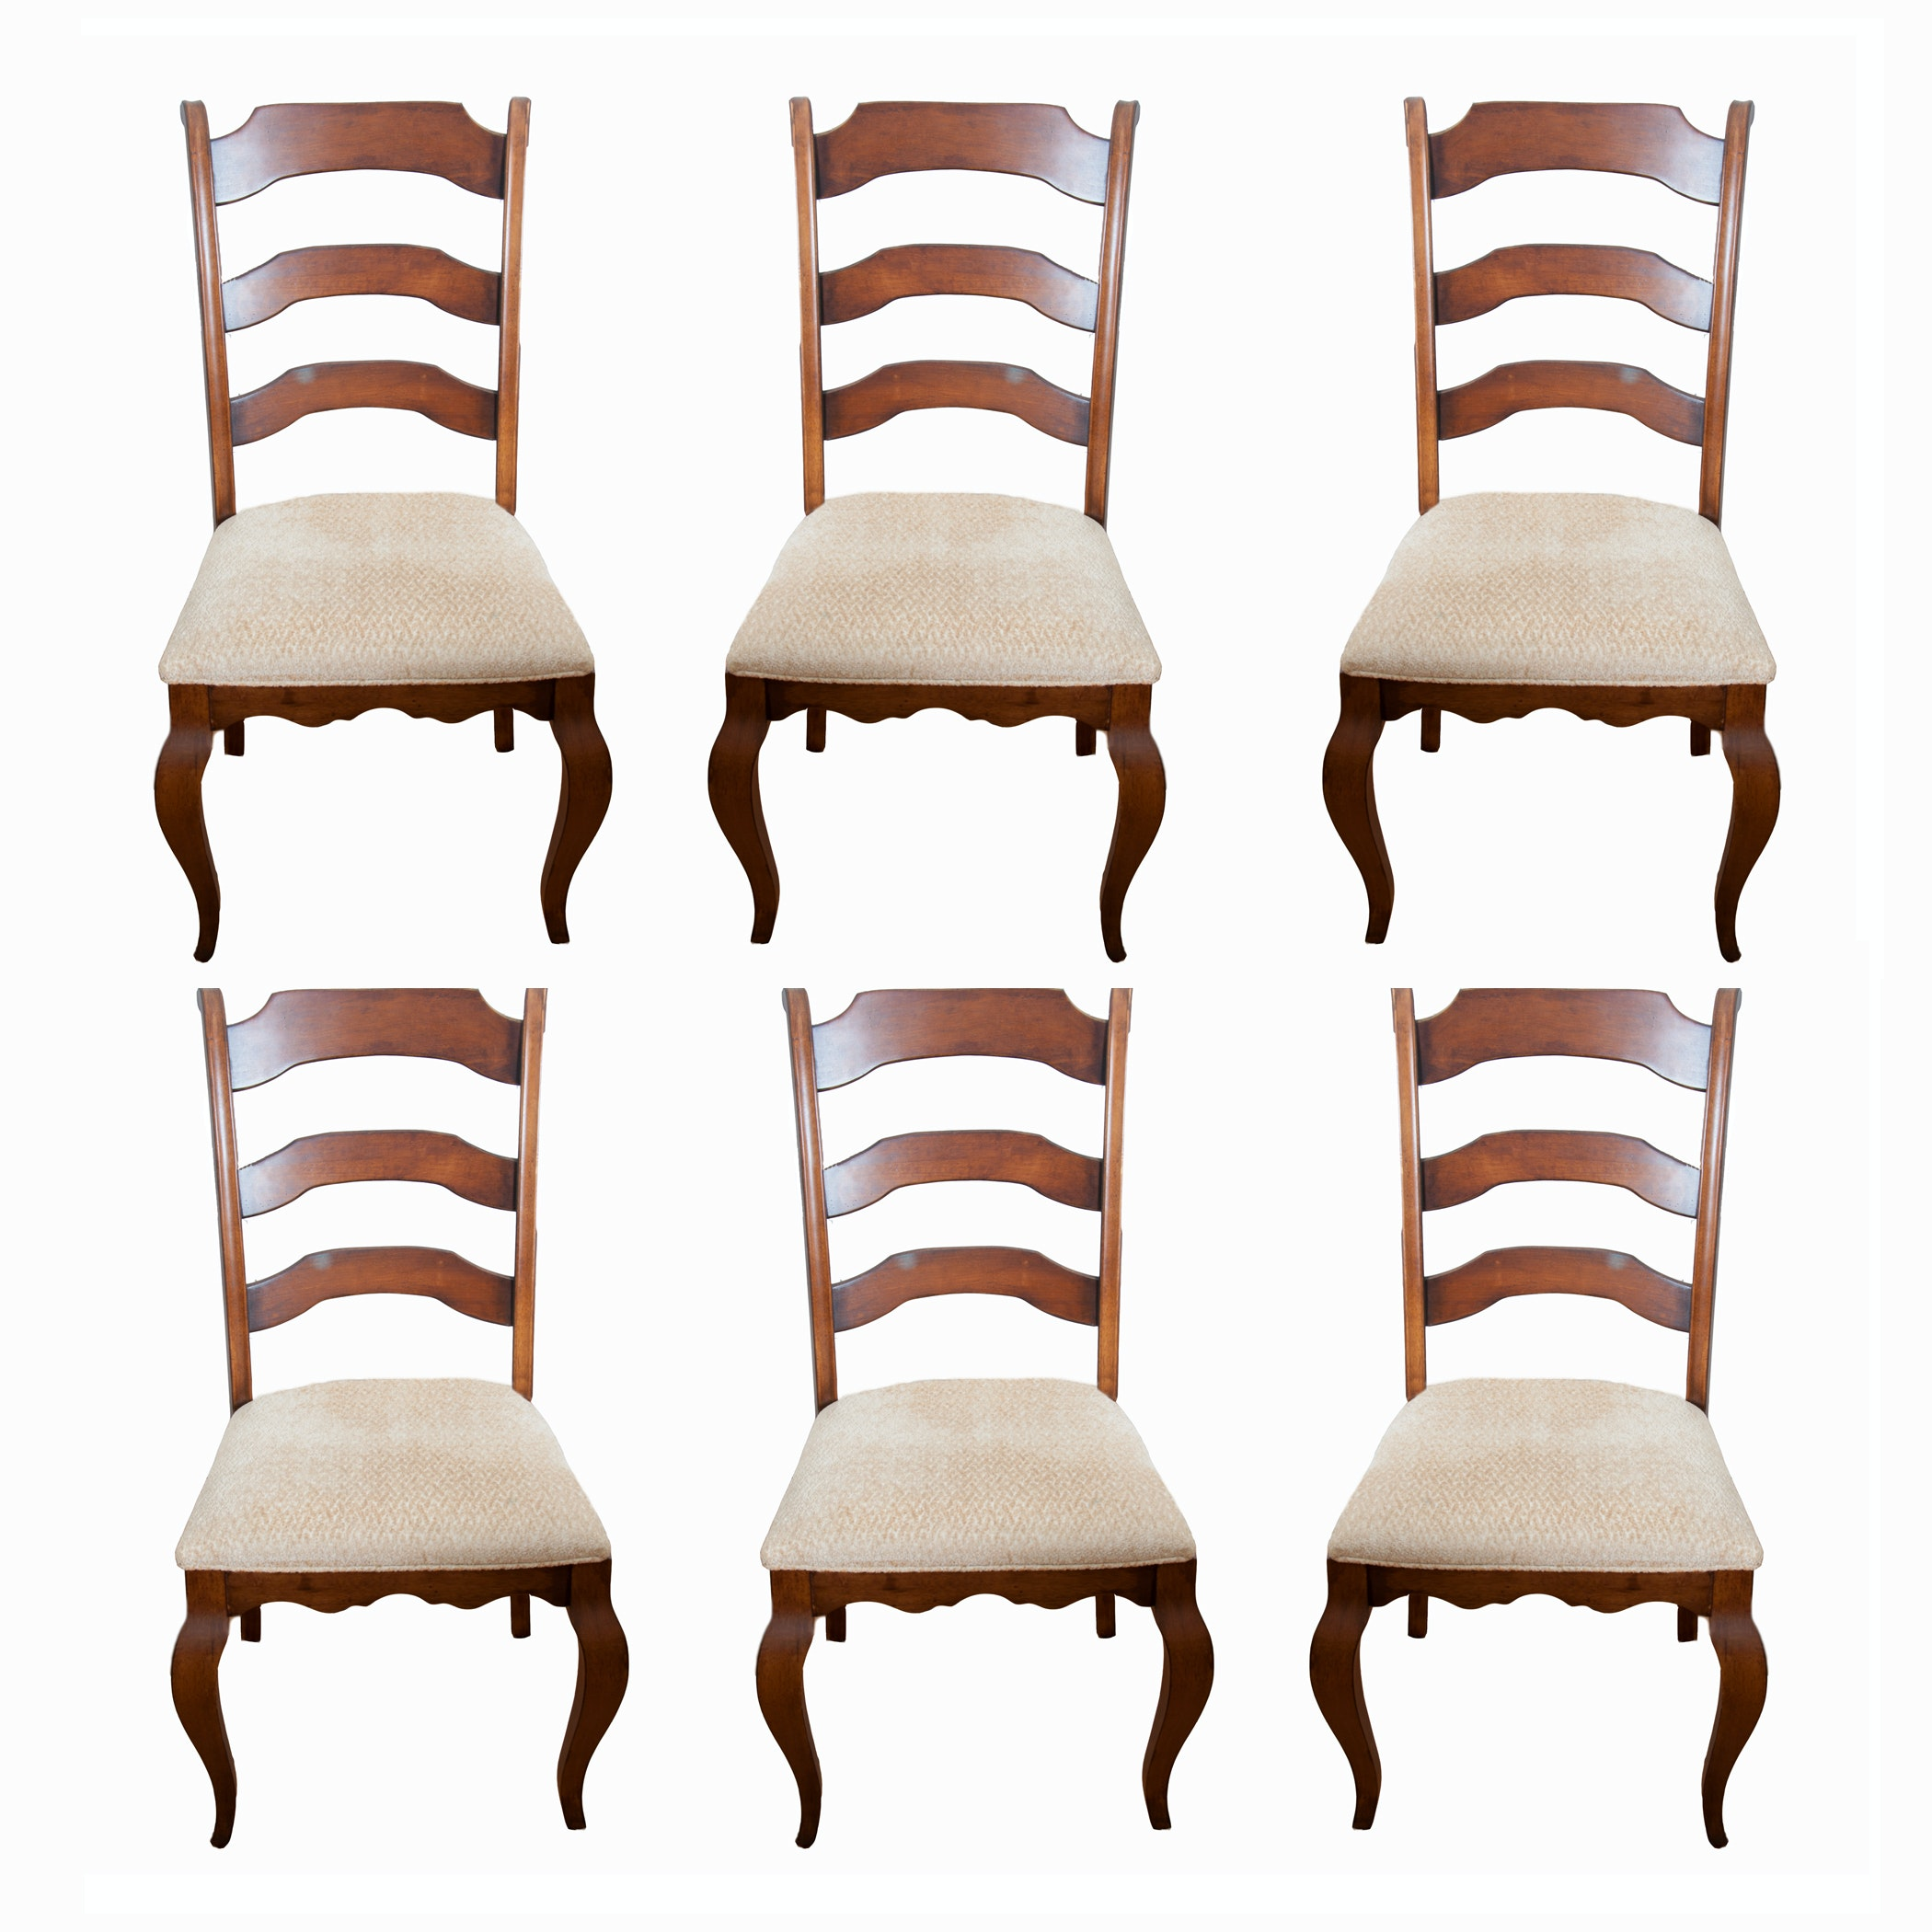 Six Contemporary Ladderback Dining Chairs